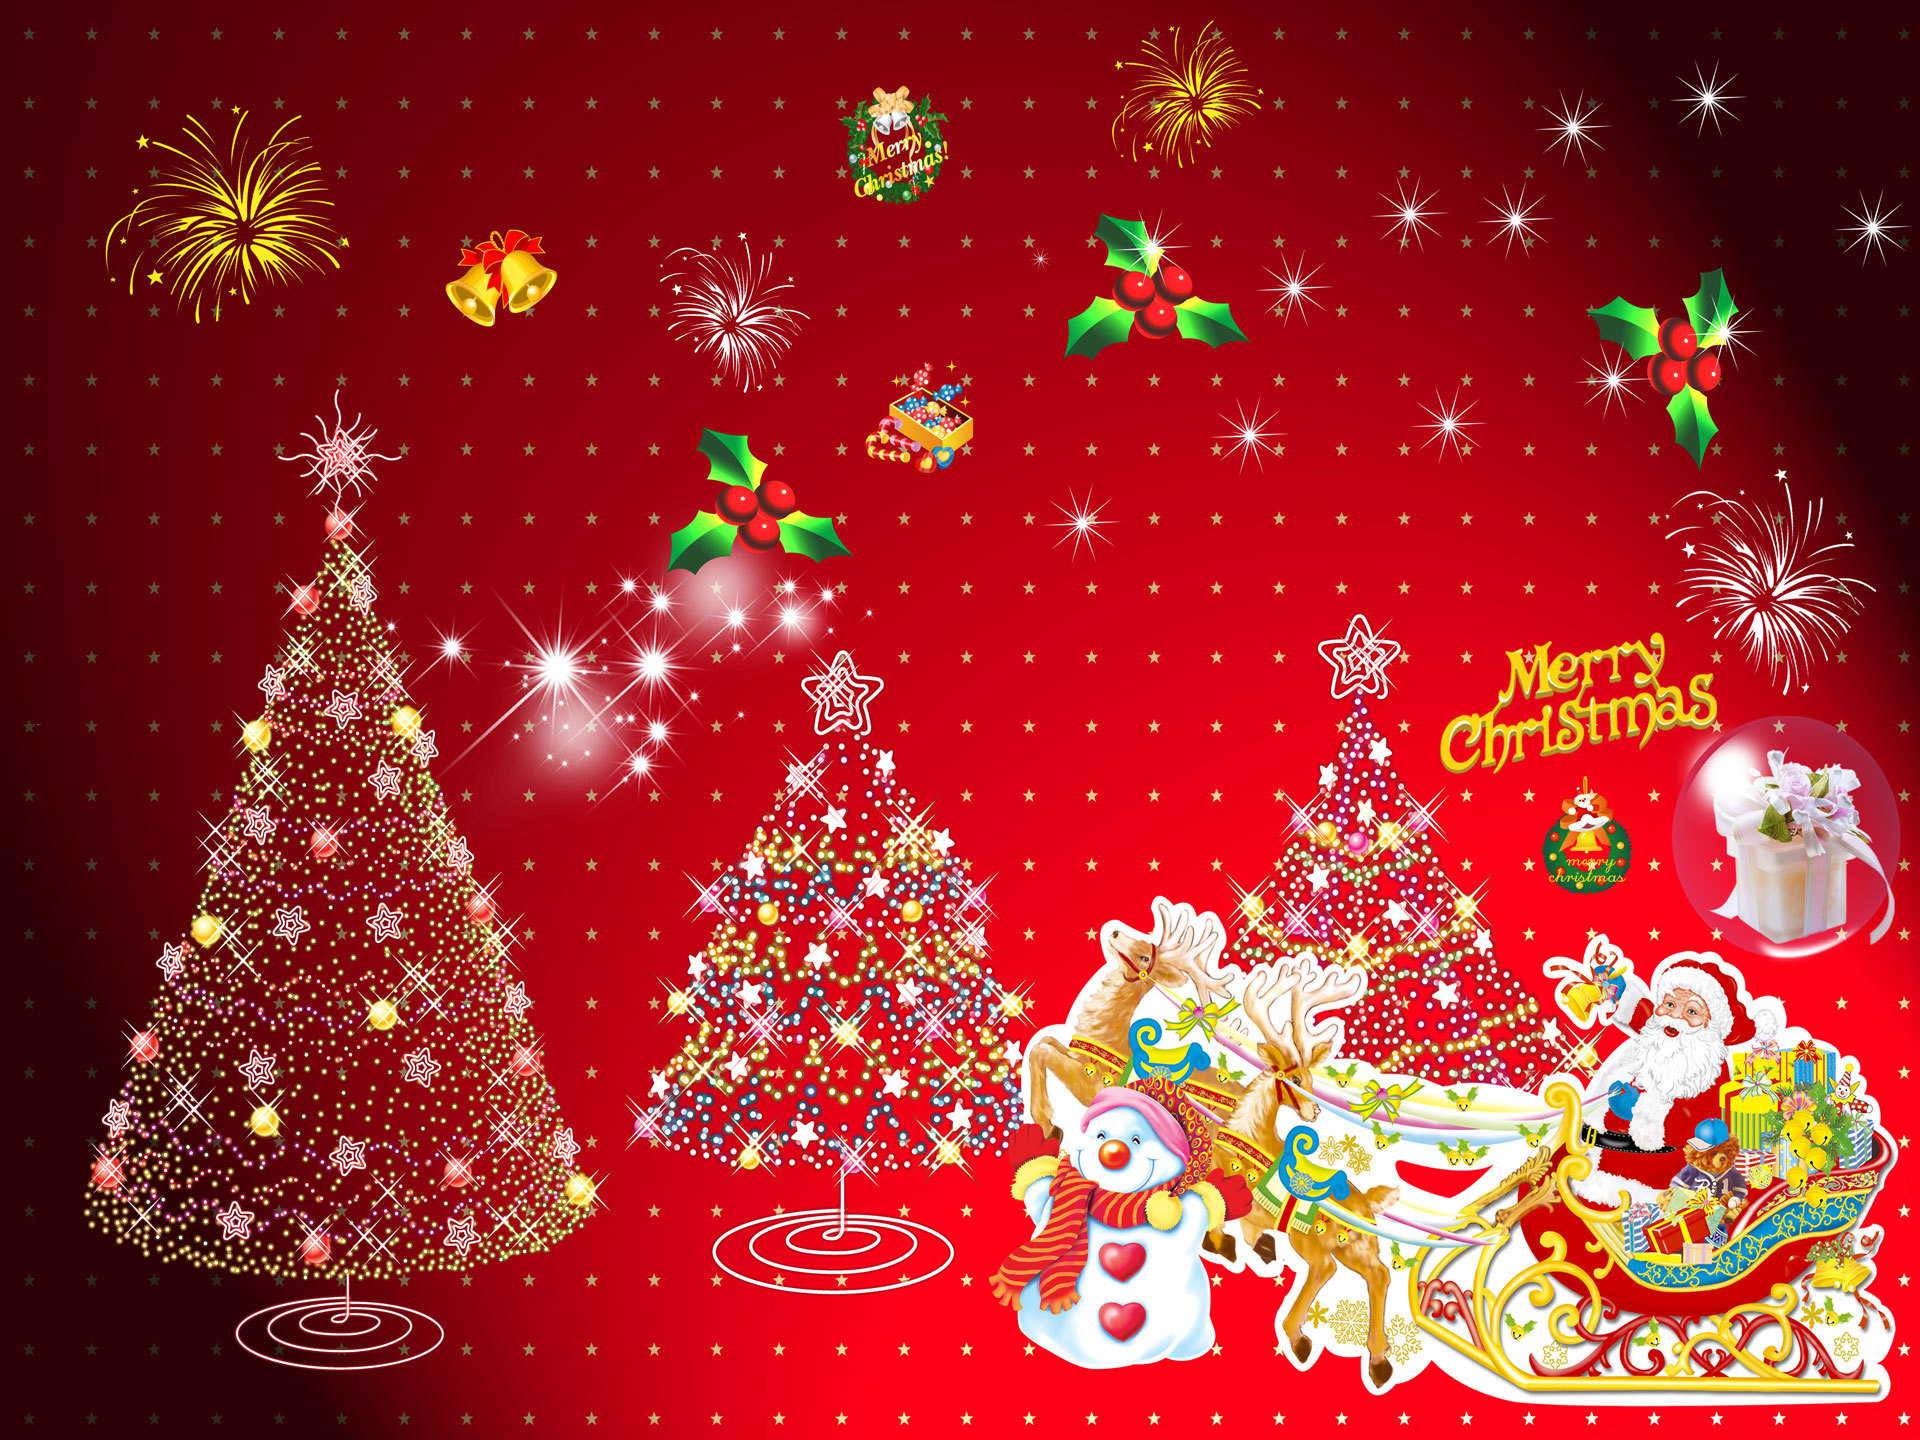 Santa Claus - Christmas Wallpaper (16092485) - Fanpop